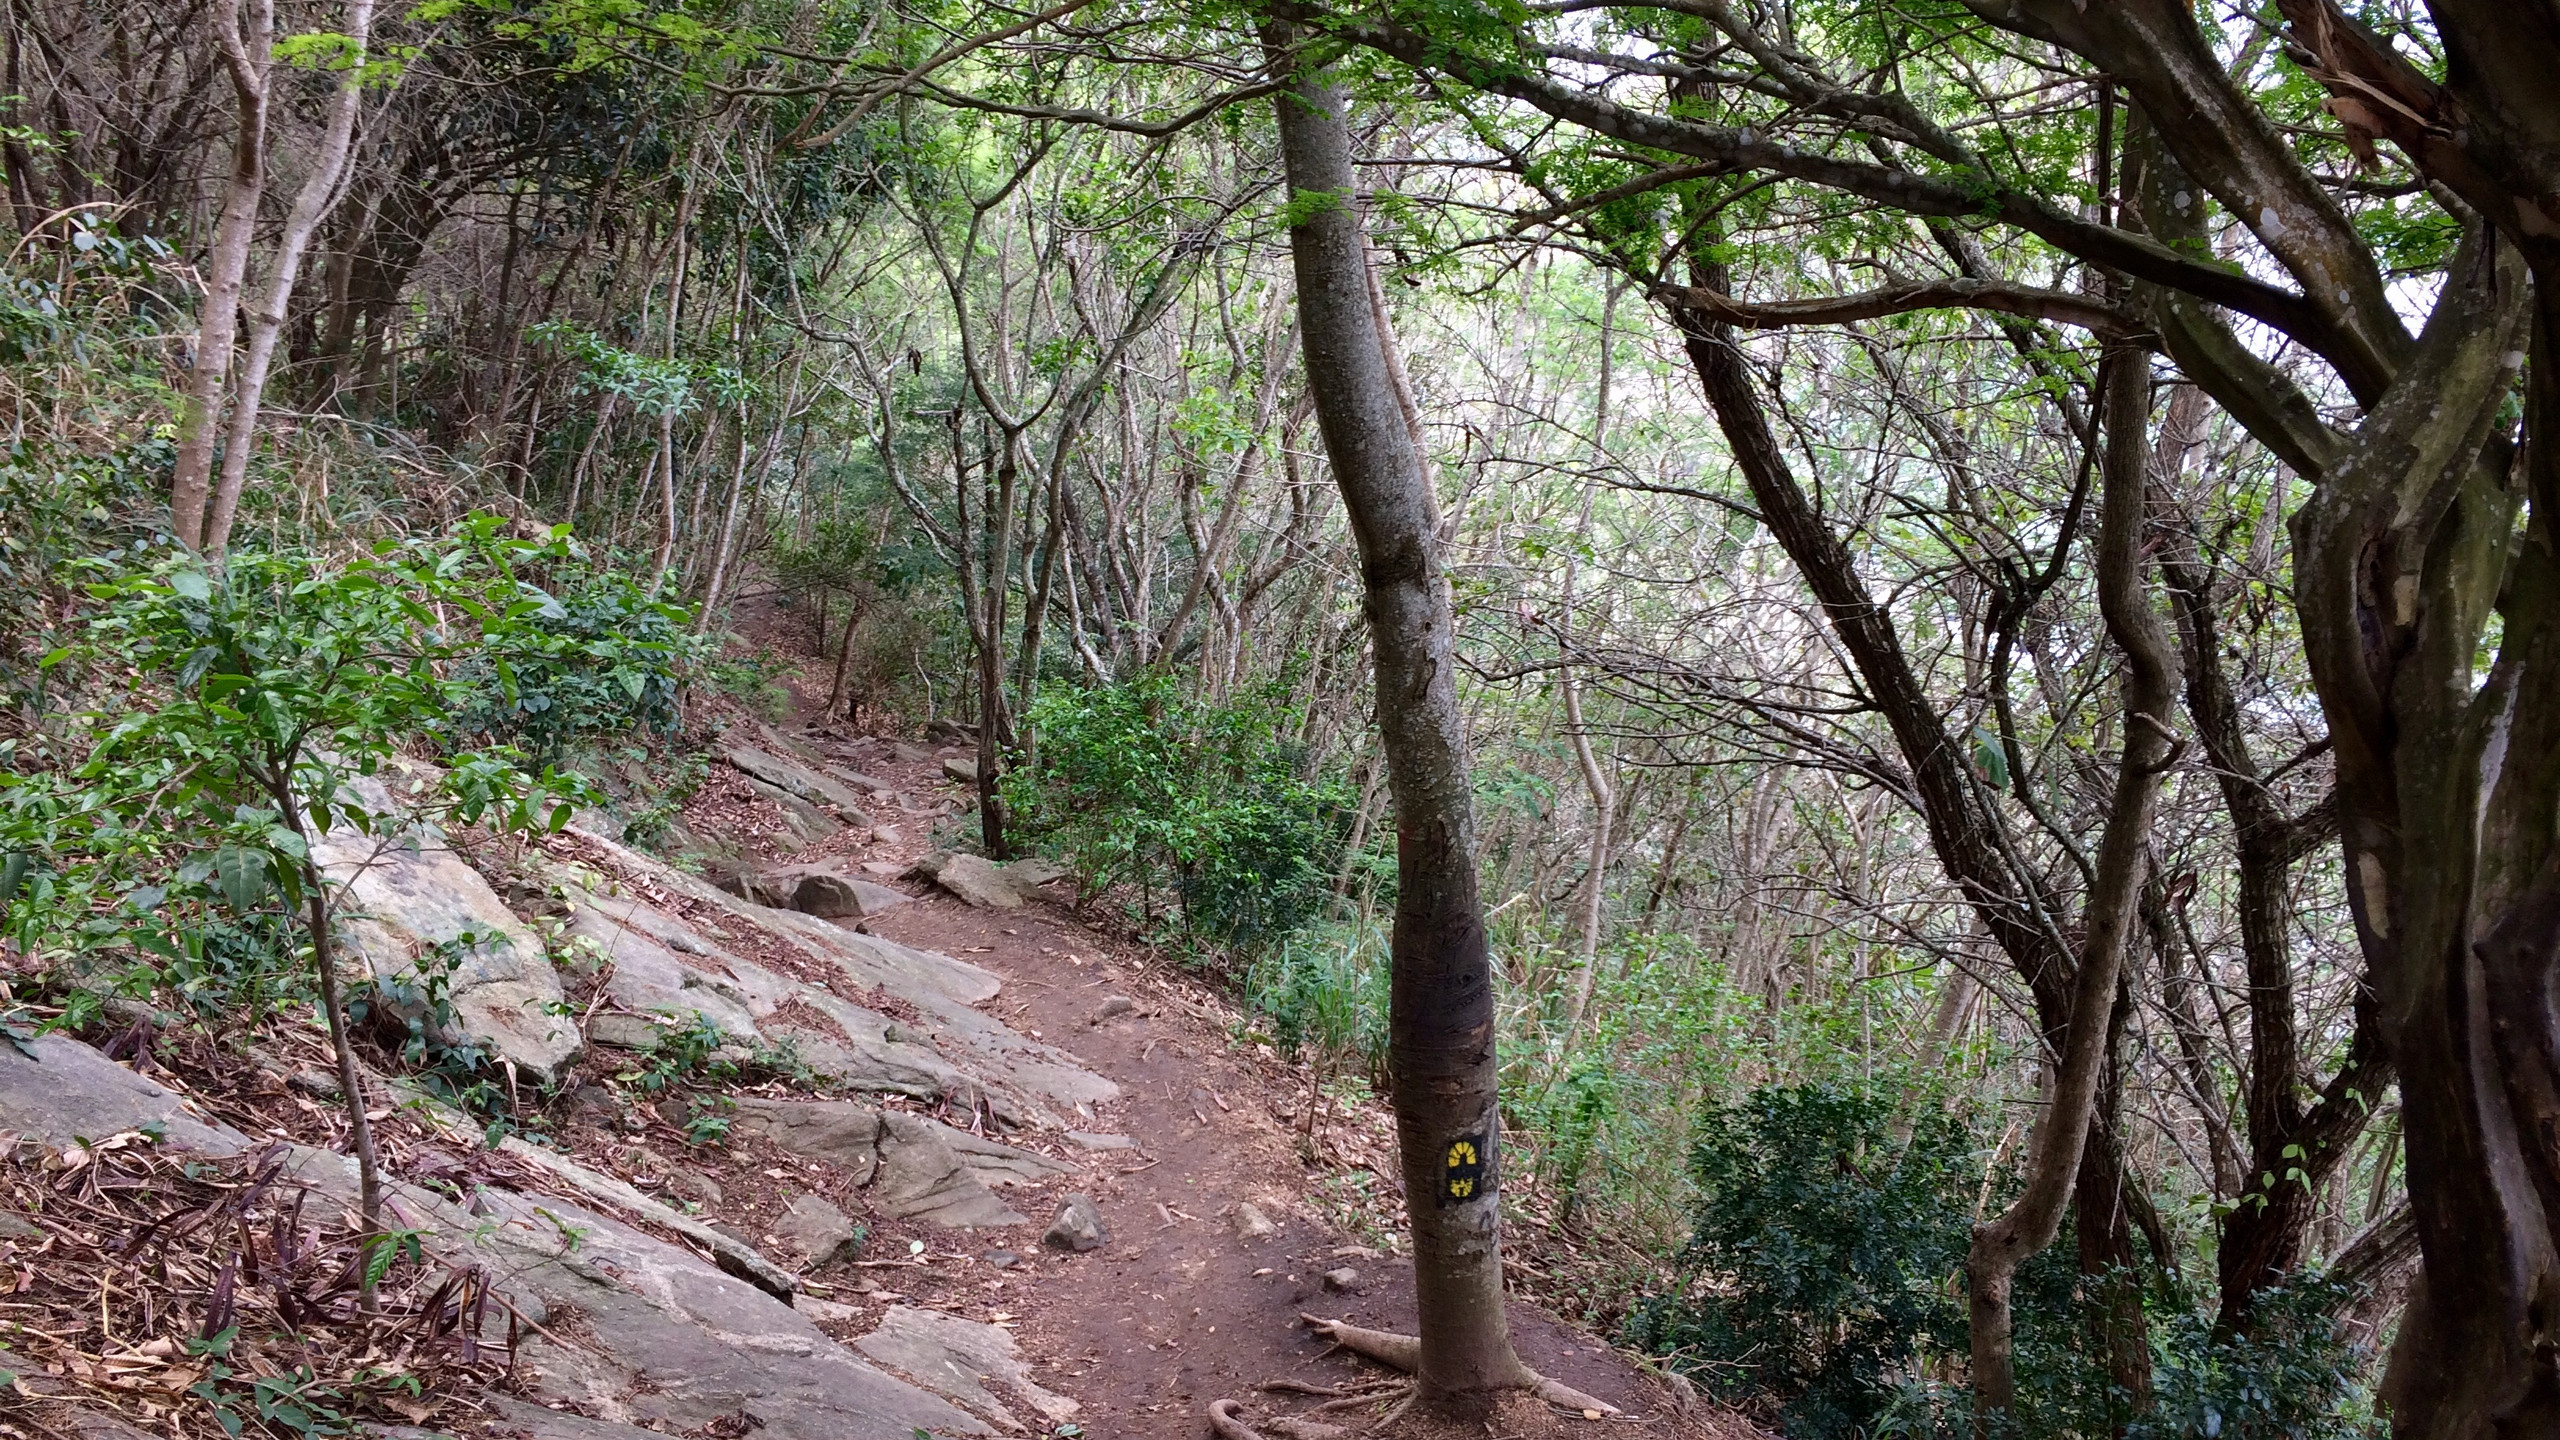 Trail near Guaratiba